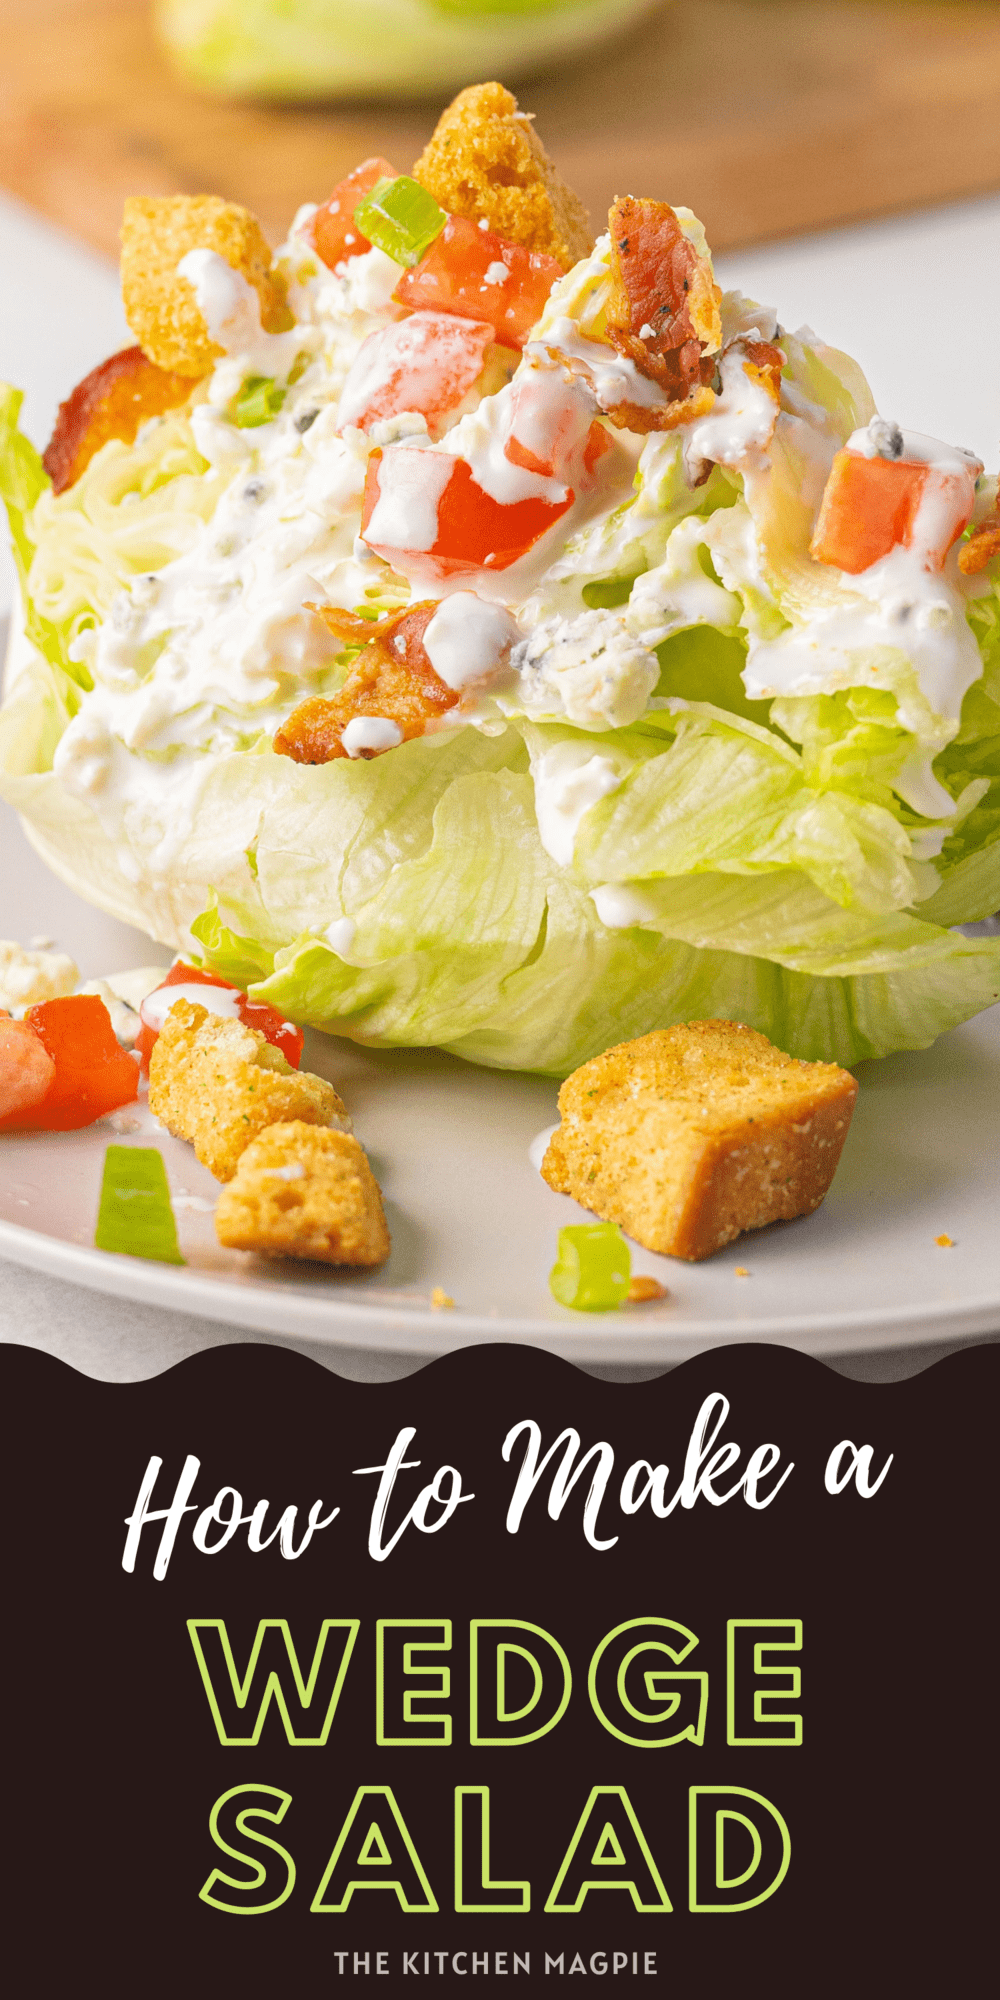 The classic wedge salad topped with tomatoes, bacon, croutons, blue cheese and homemade blue cheese dressing.